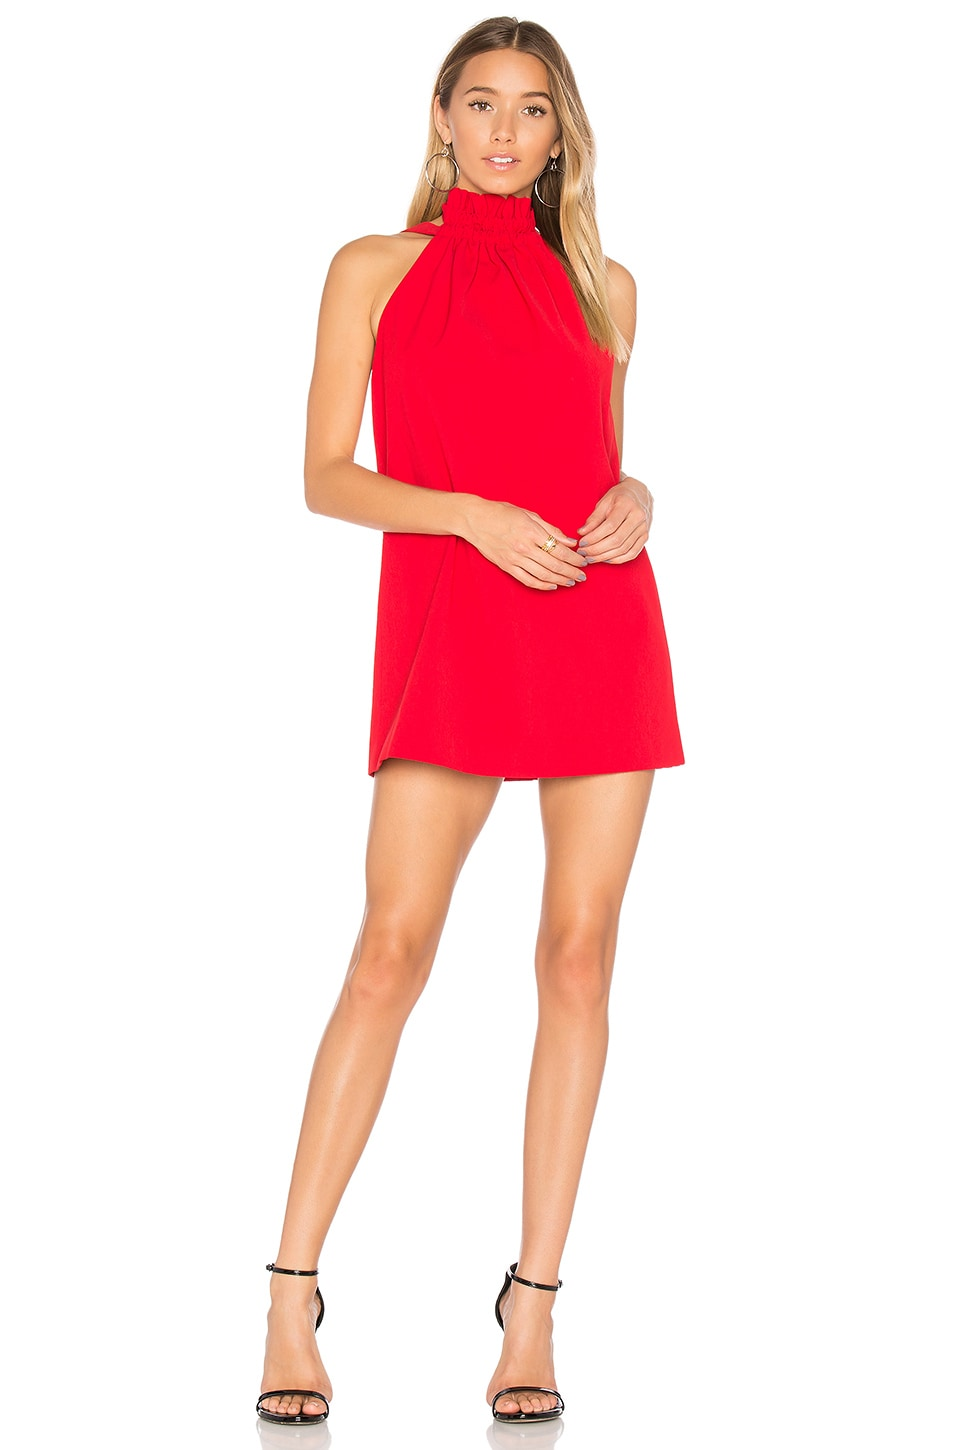 Out Of Line Mini Dress